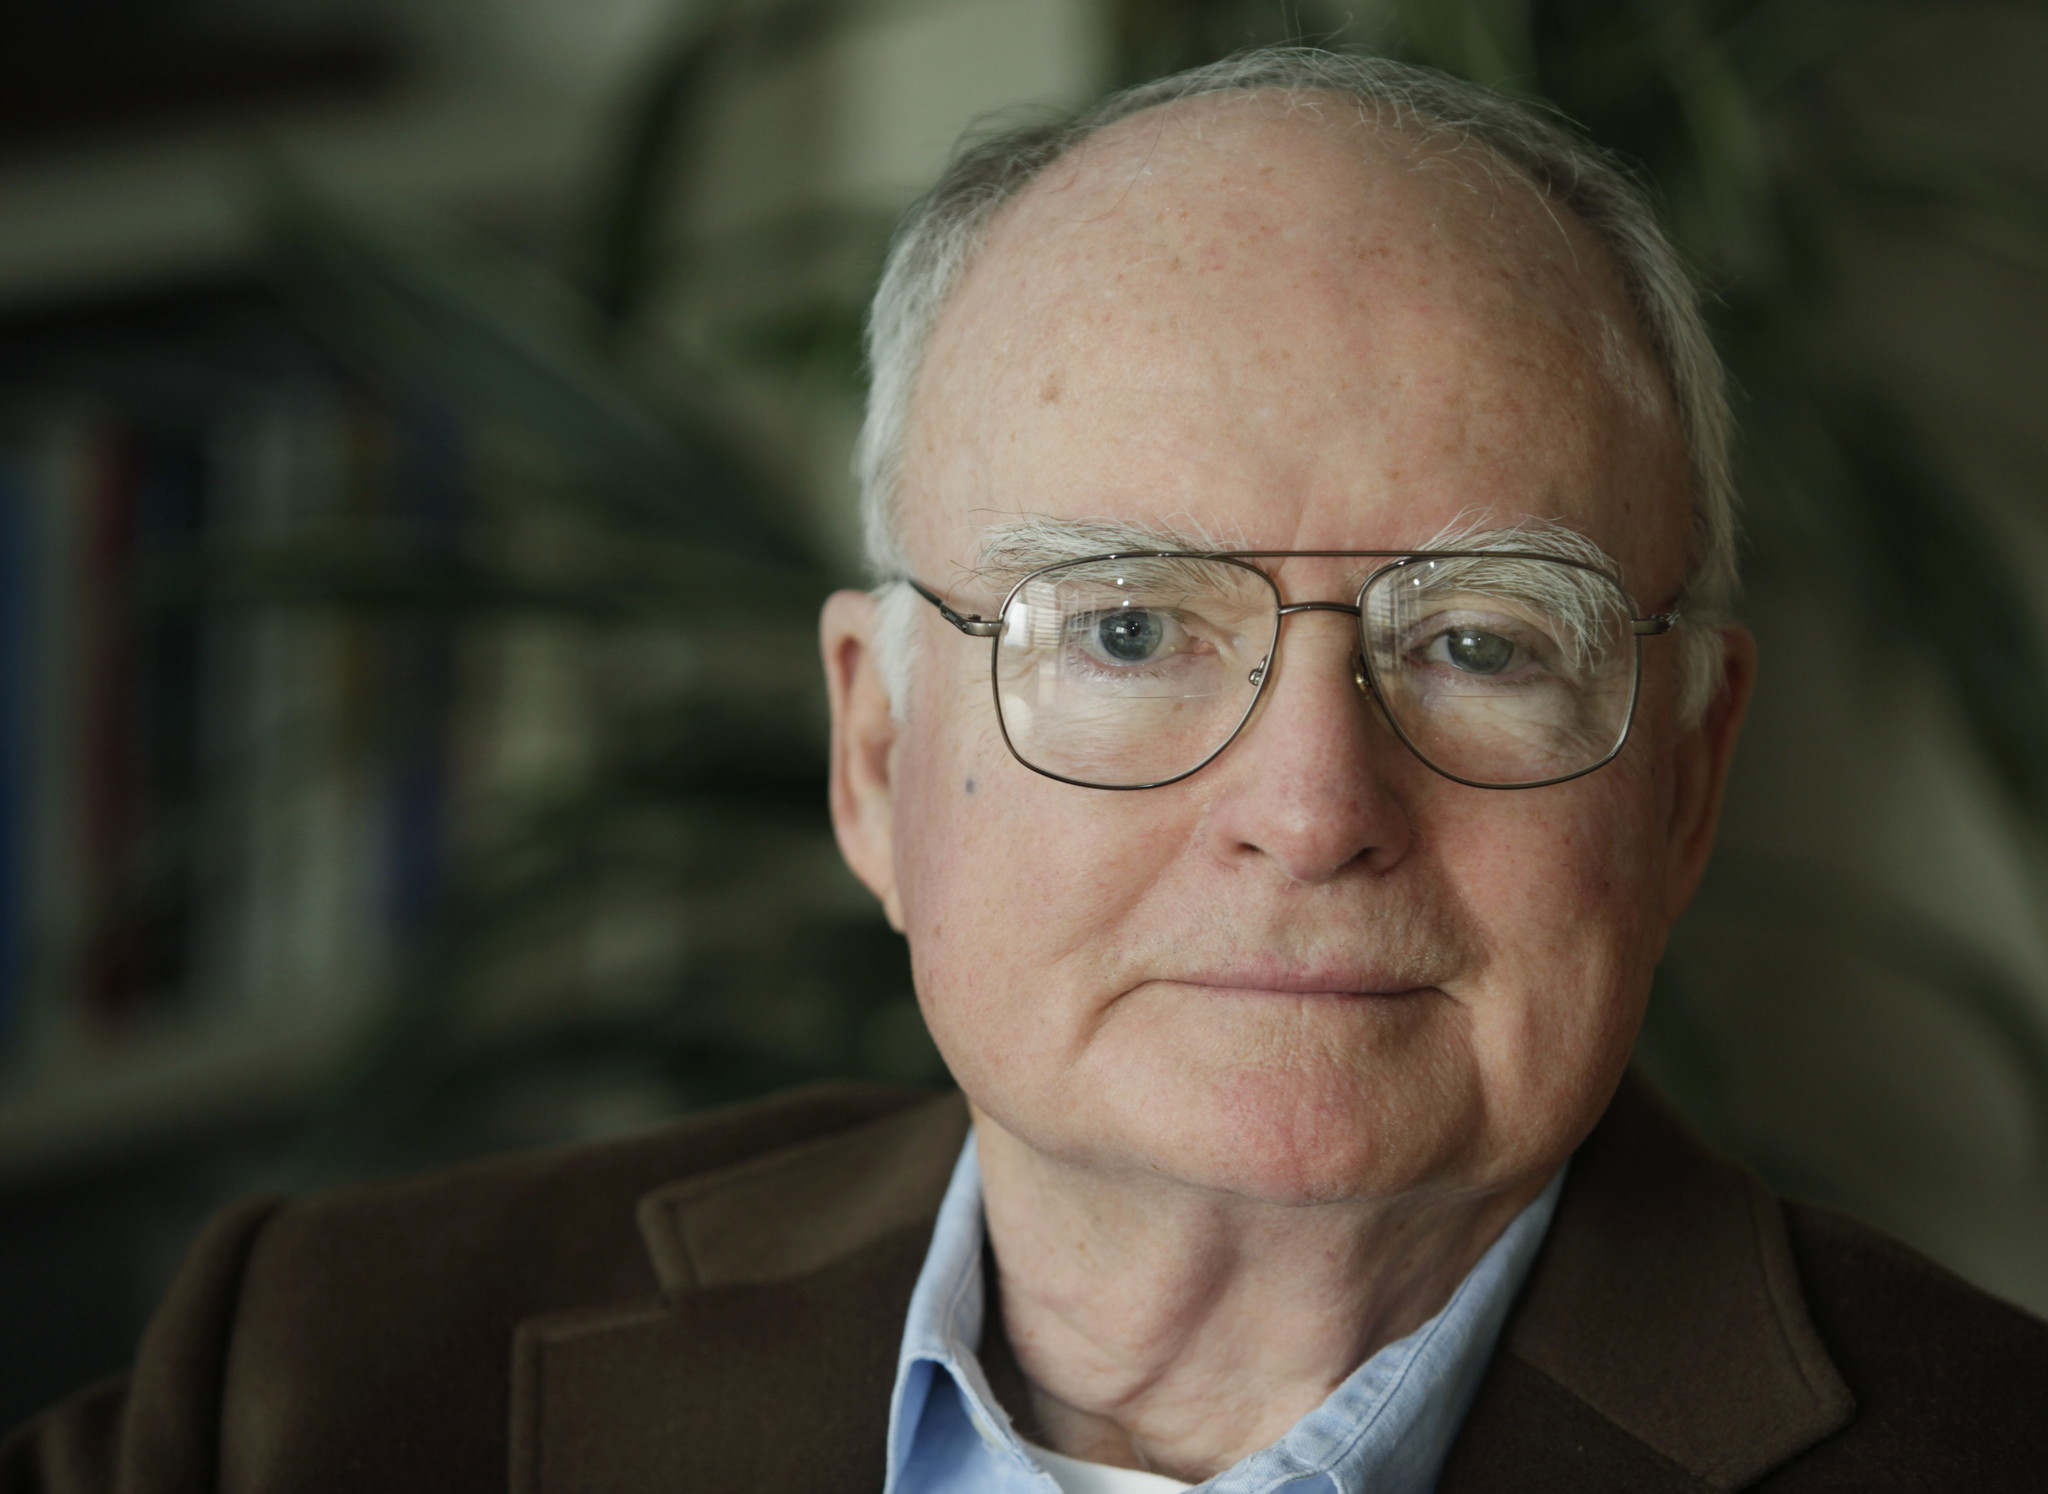 William Ruckelshaus, deputy attorney general who famously defied Richard Nixon in Watergate investigation drama, dies at 87